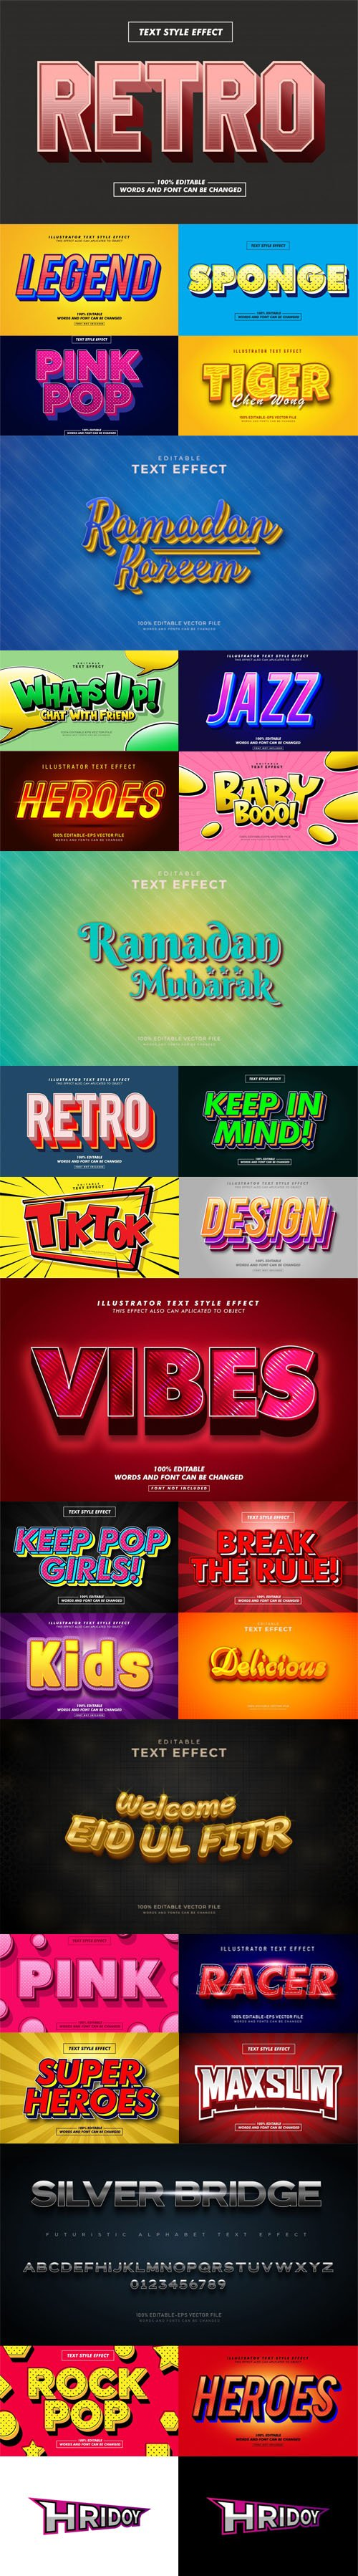 29 Awesome New Text Effects Vector Templates